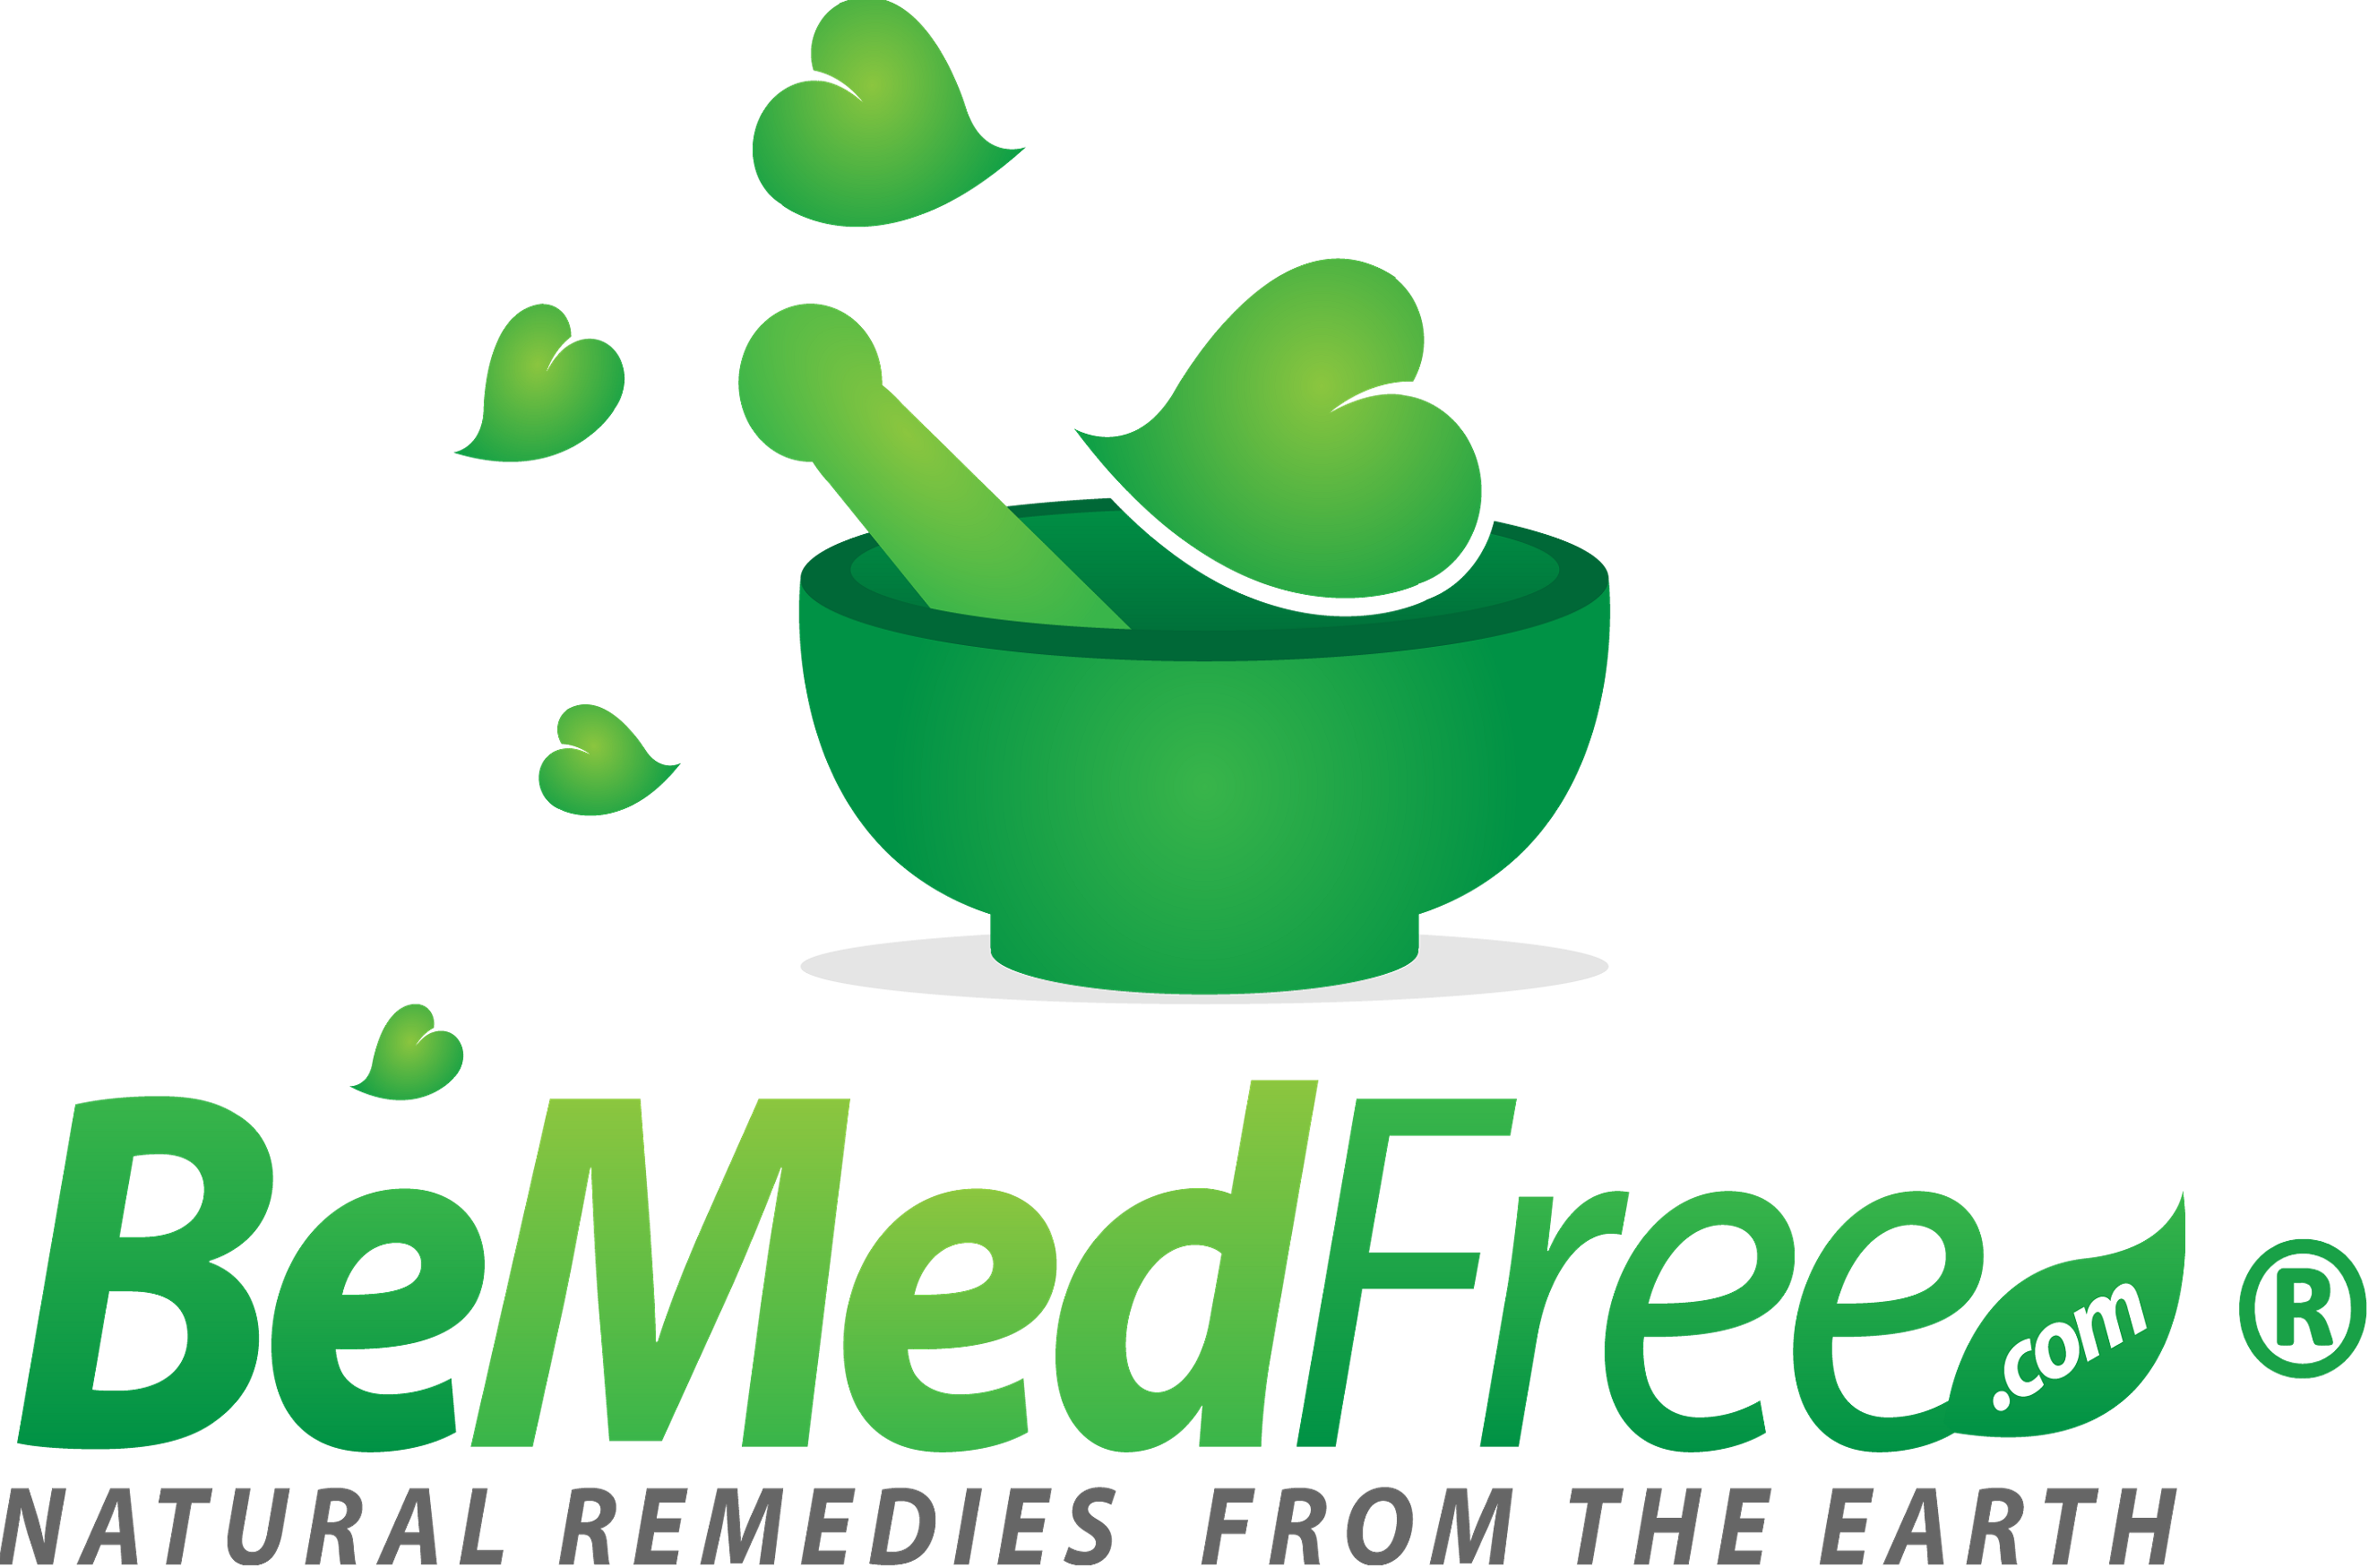 BeMedFree.com® - Natural Remedies From The Earth